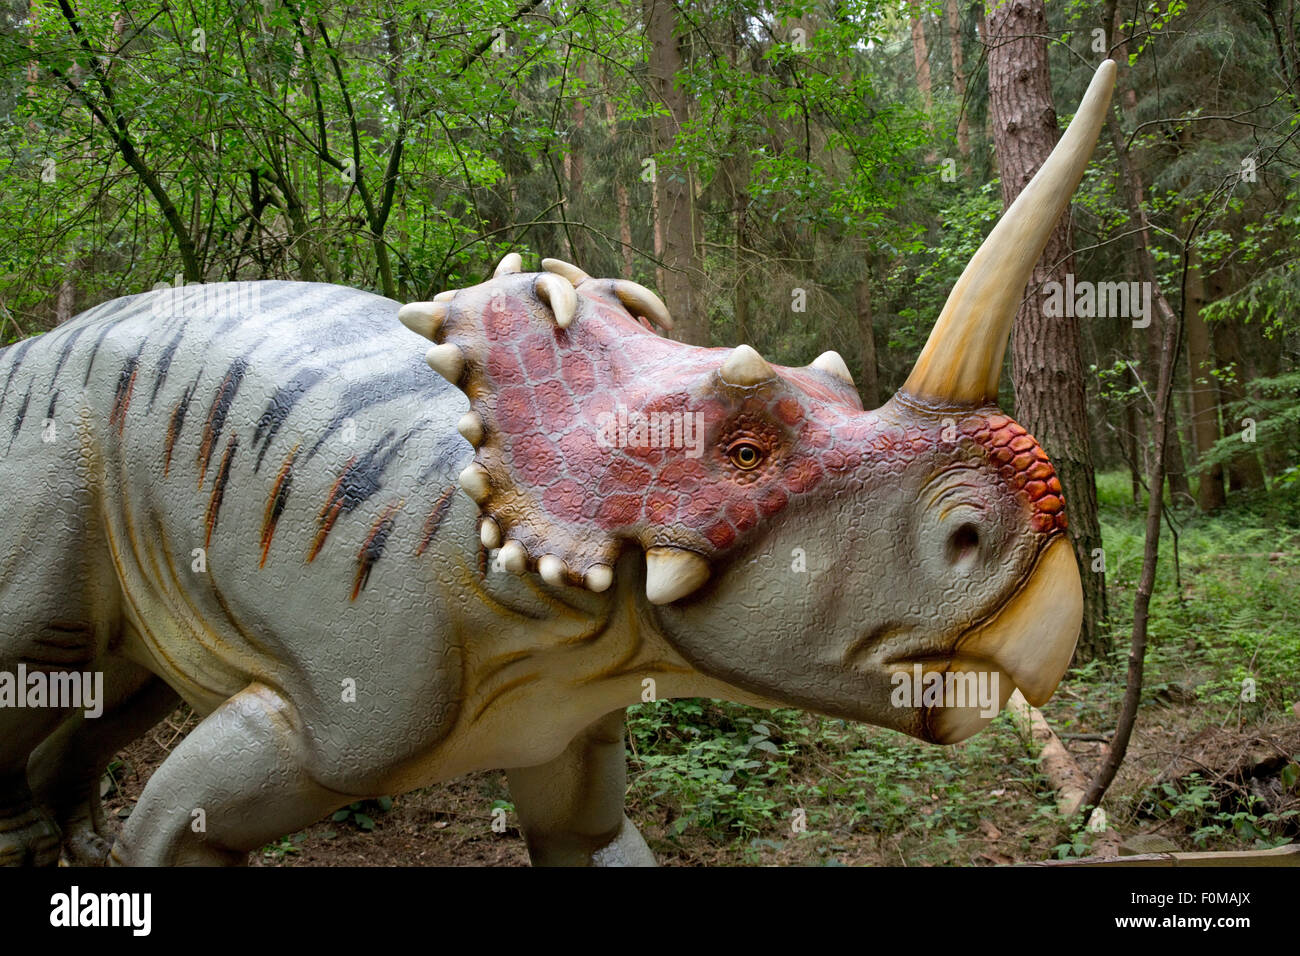 Centrosaurus is a genus of herbivorous ceratopsian dinosaurs from the late Cretaceous of Canada Dinosaurier Park - Stock Image